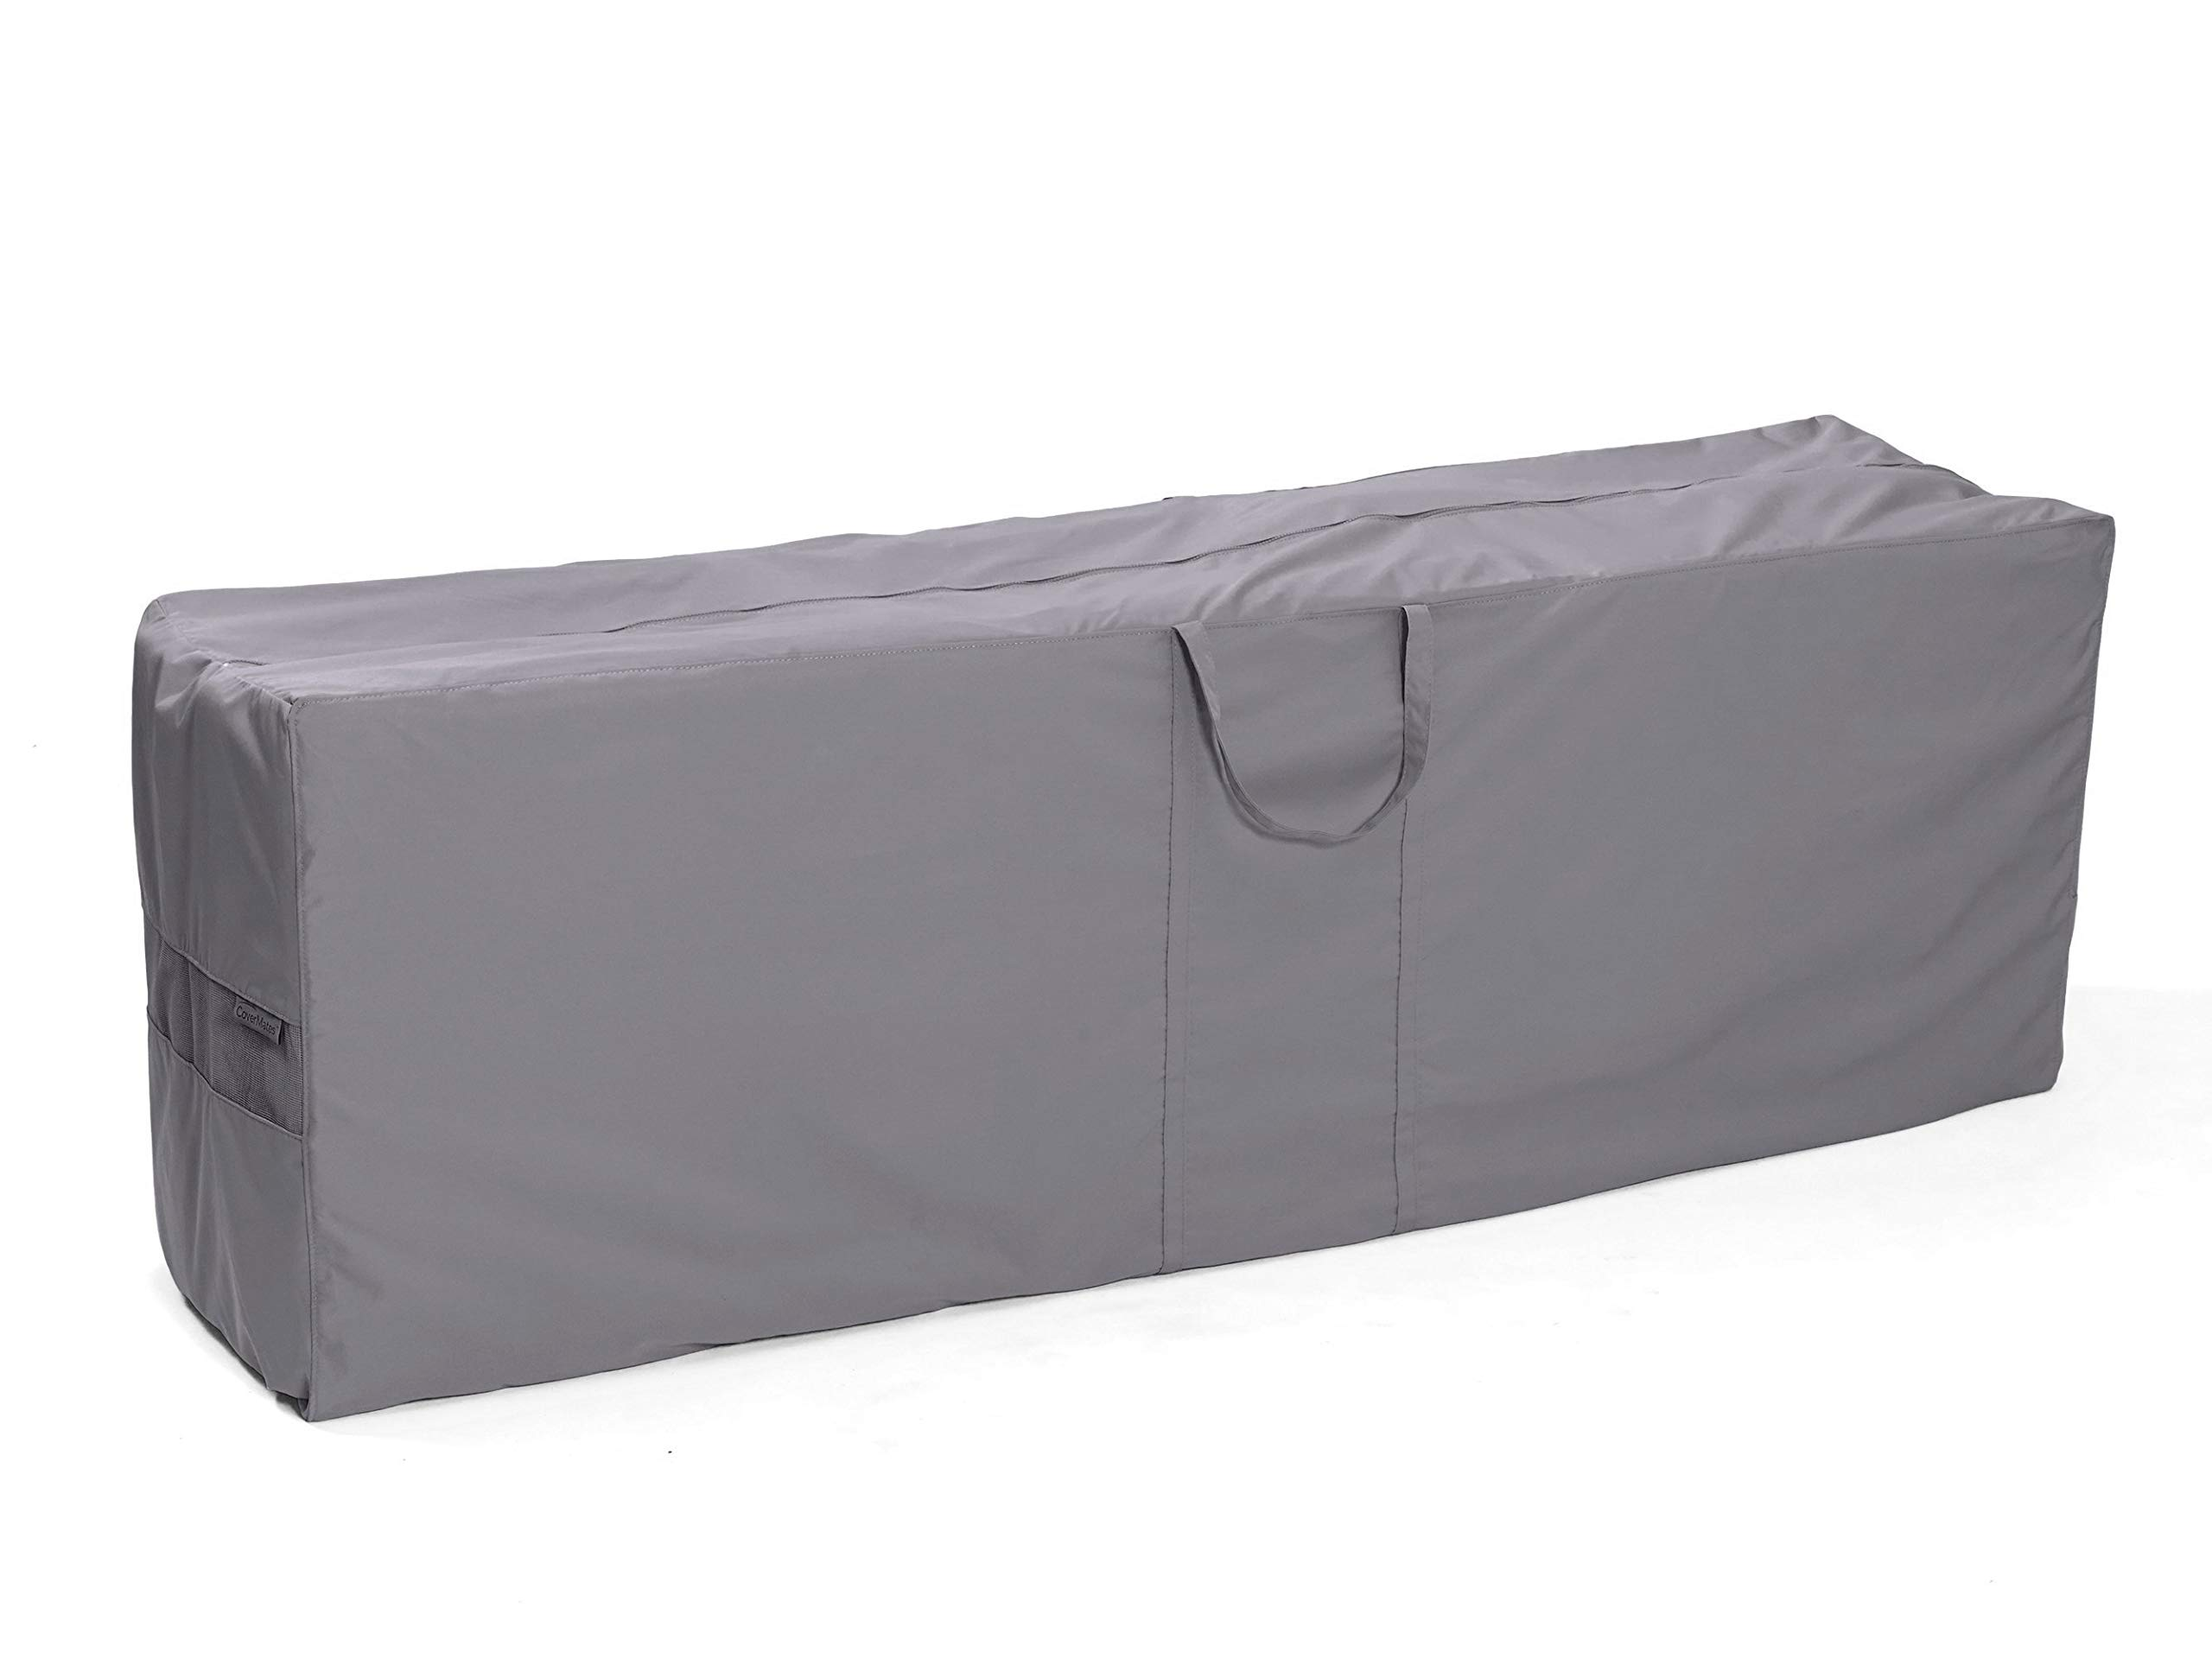 CoverMates – Cushion Storage Bag – 75W x 18D x 26H – Elite Collection – 3 YR Warranty – Year Around Protection - Charcoal by CoverMates (Image #1)